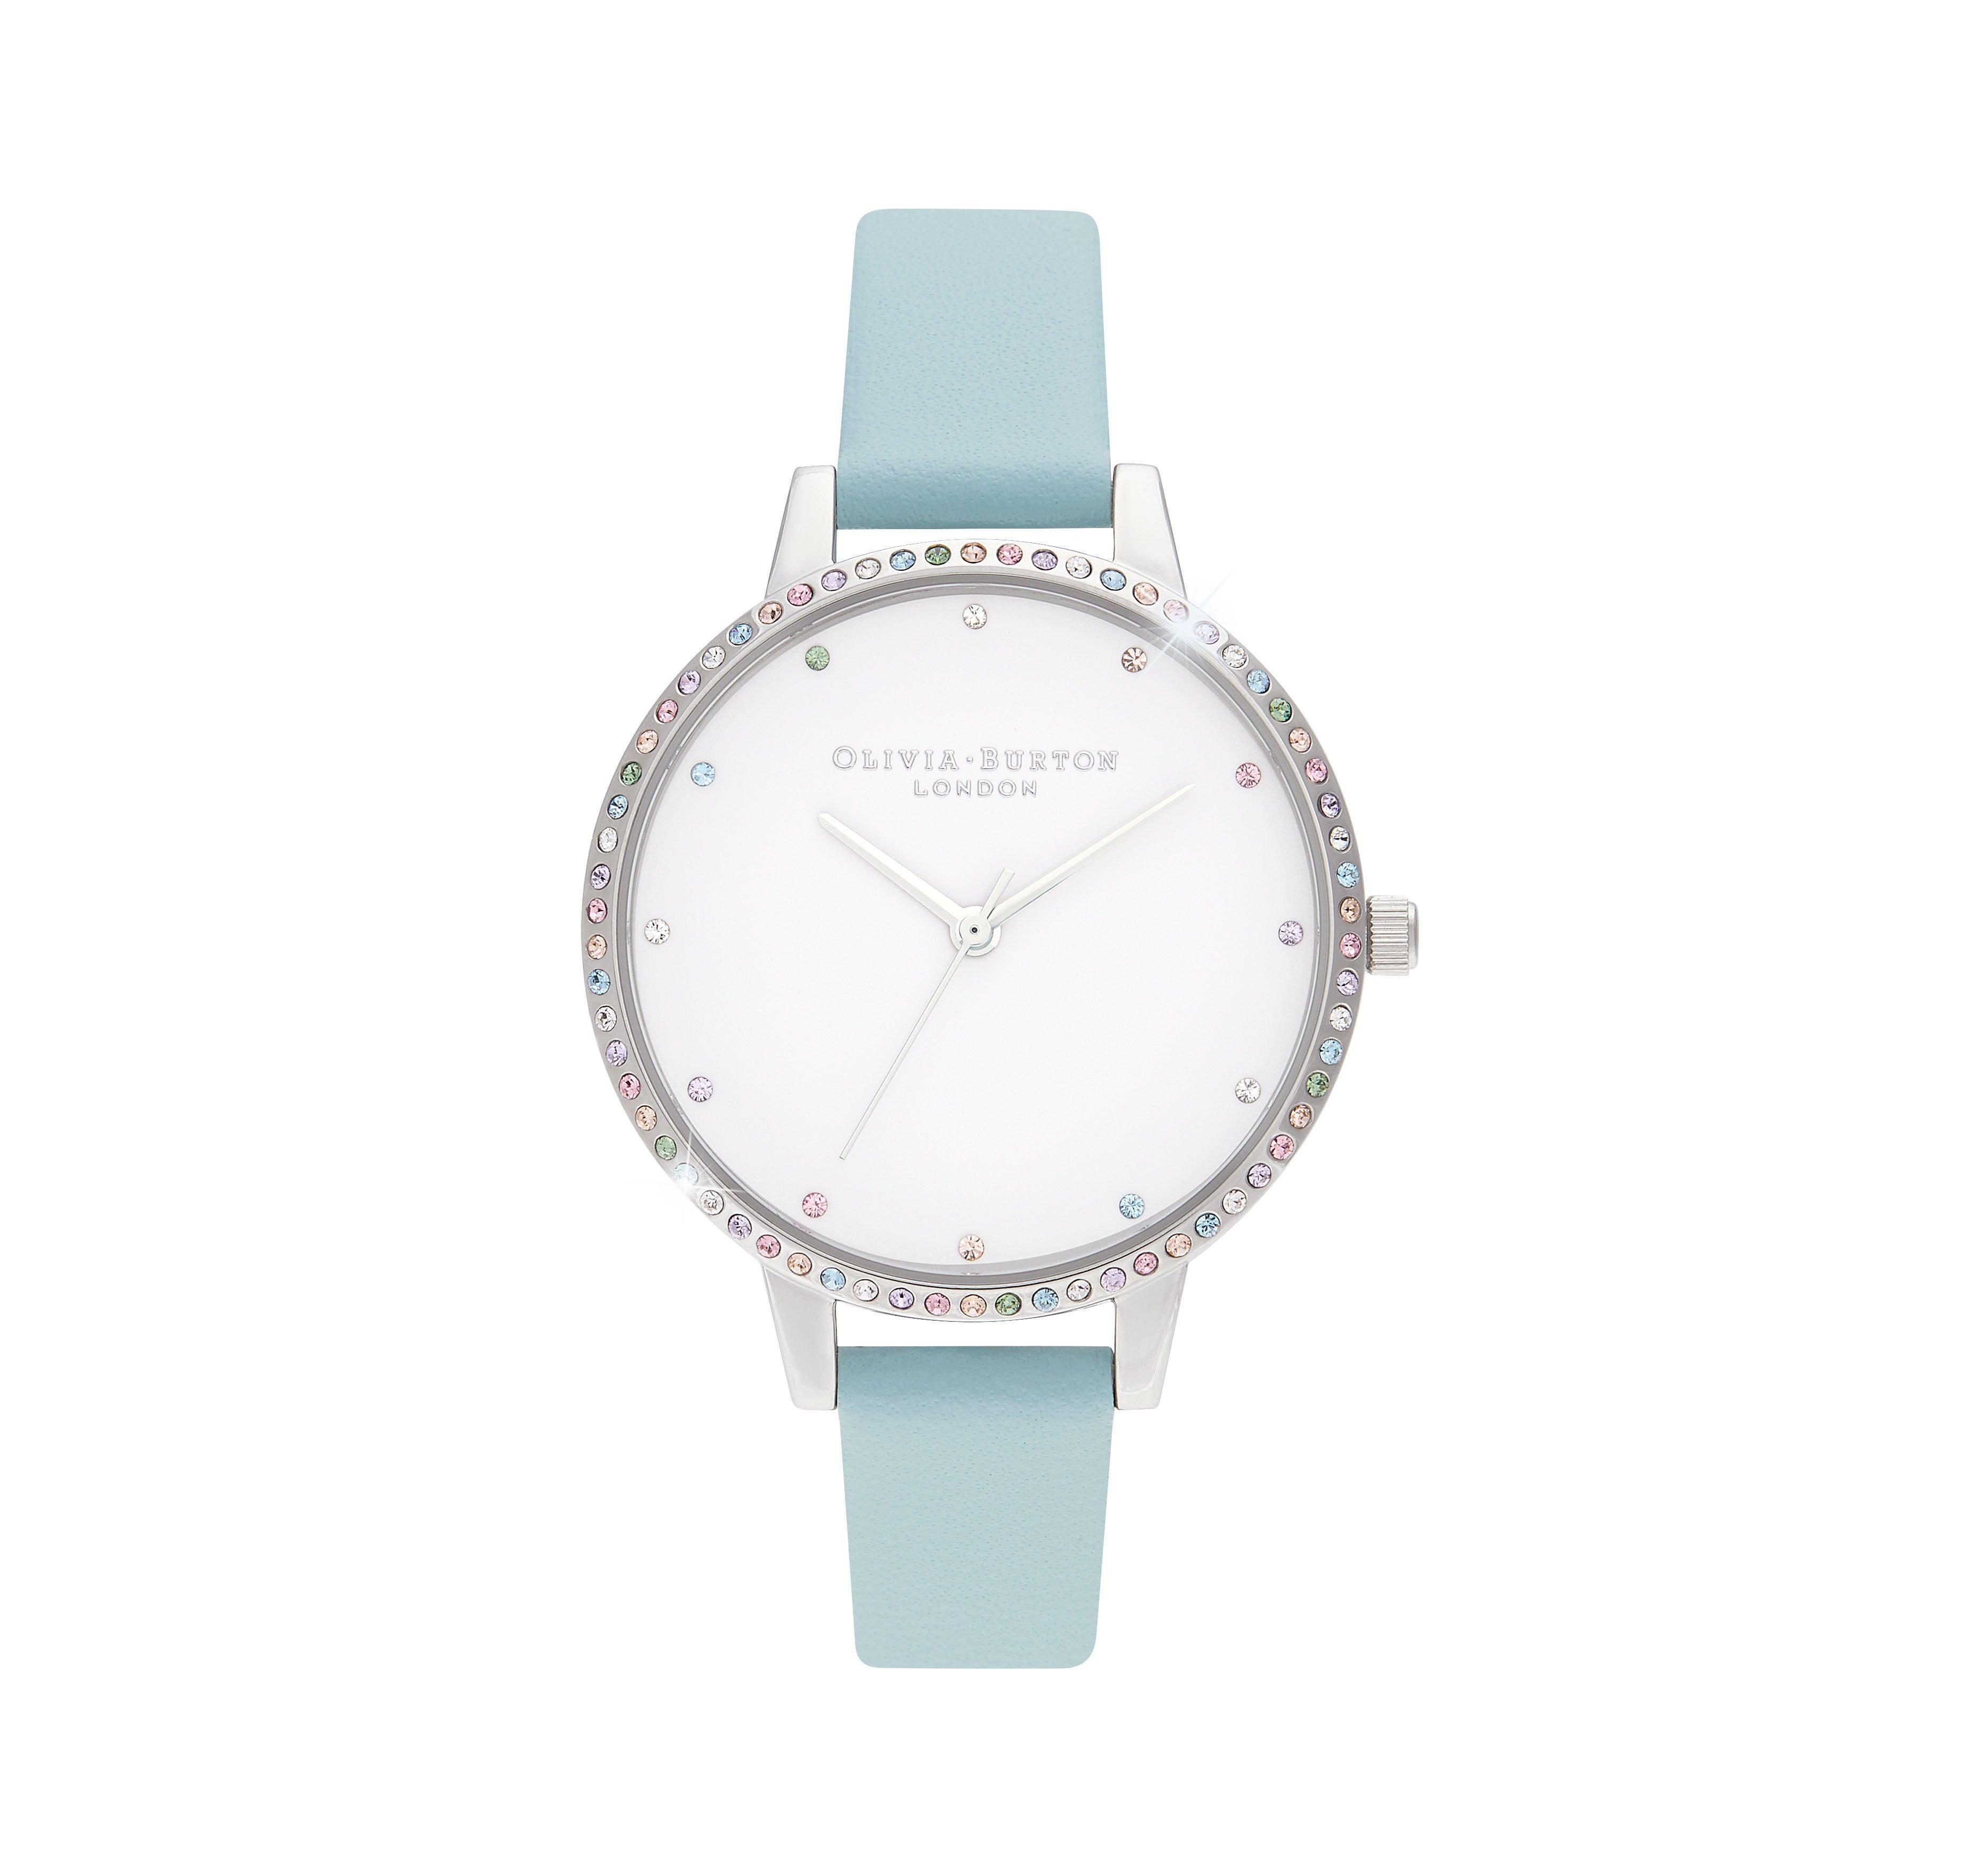 Olivia Burton Rainbow Ladies Watch